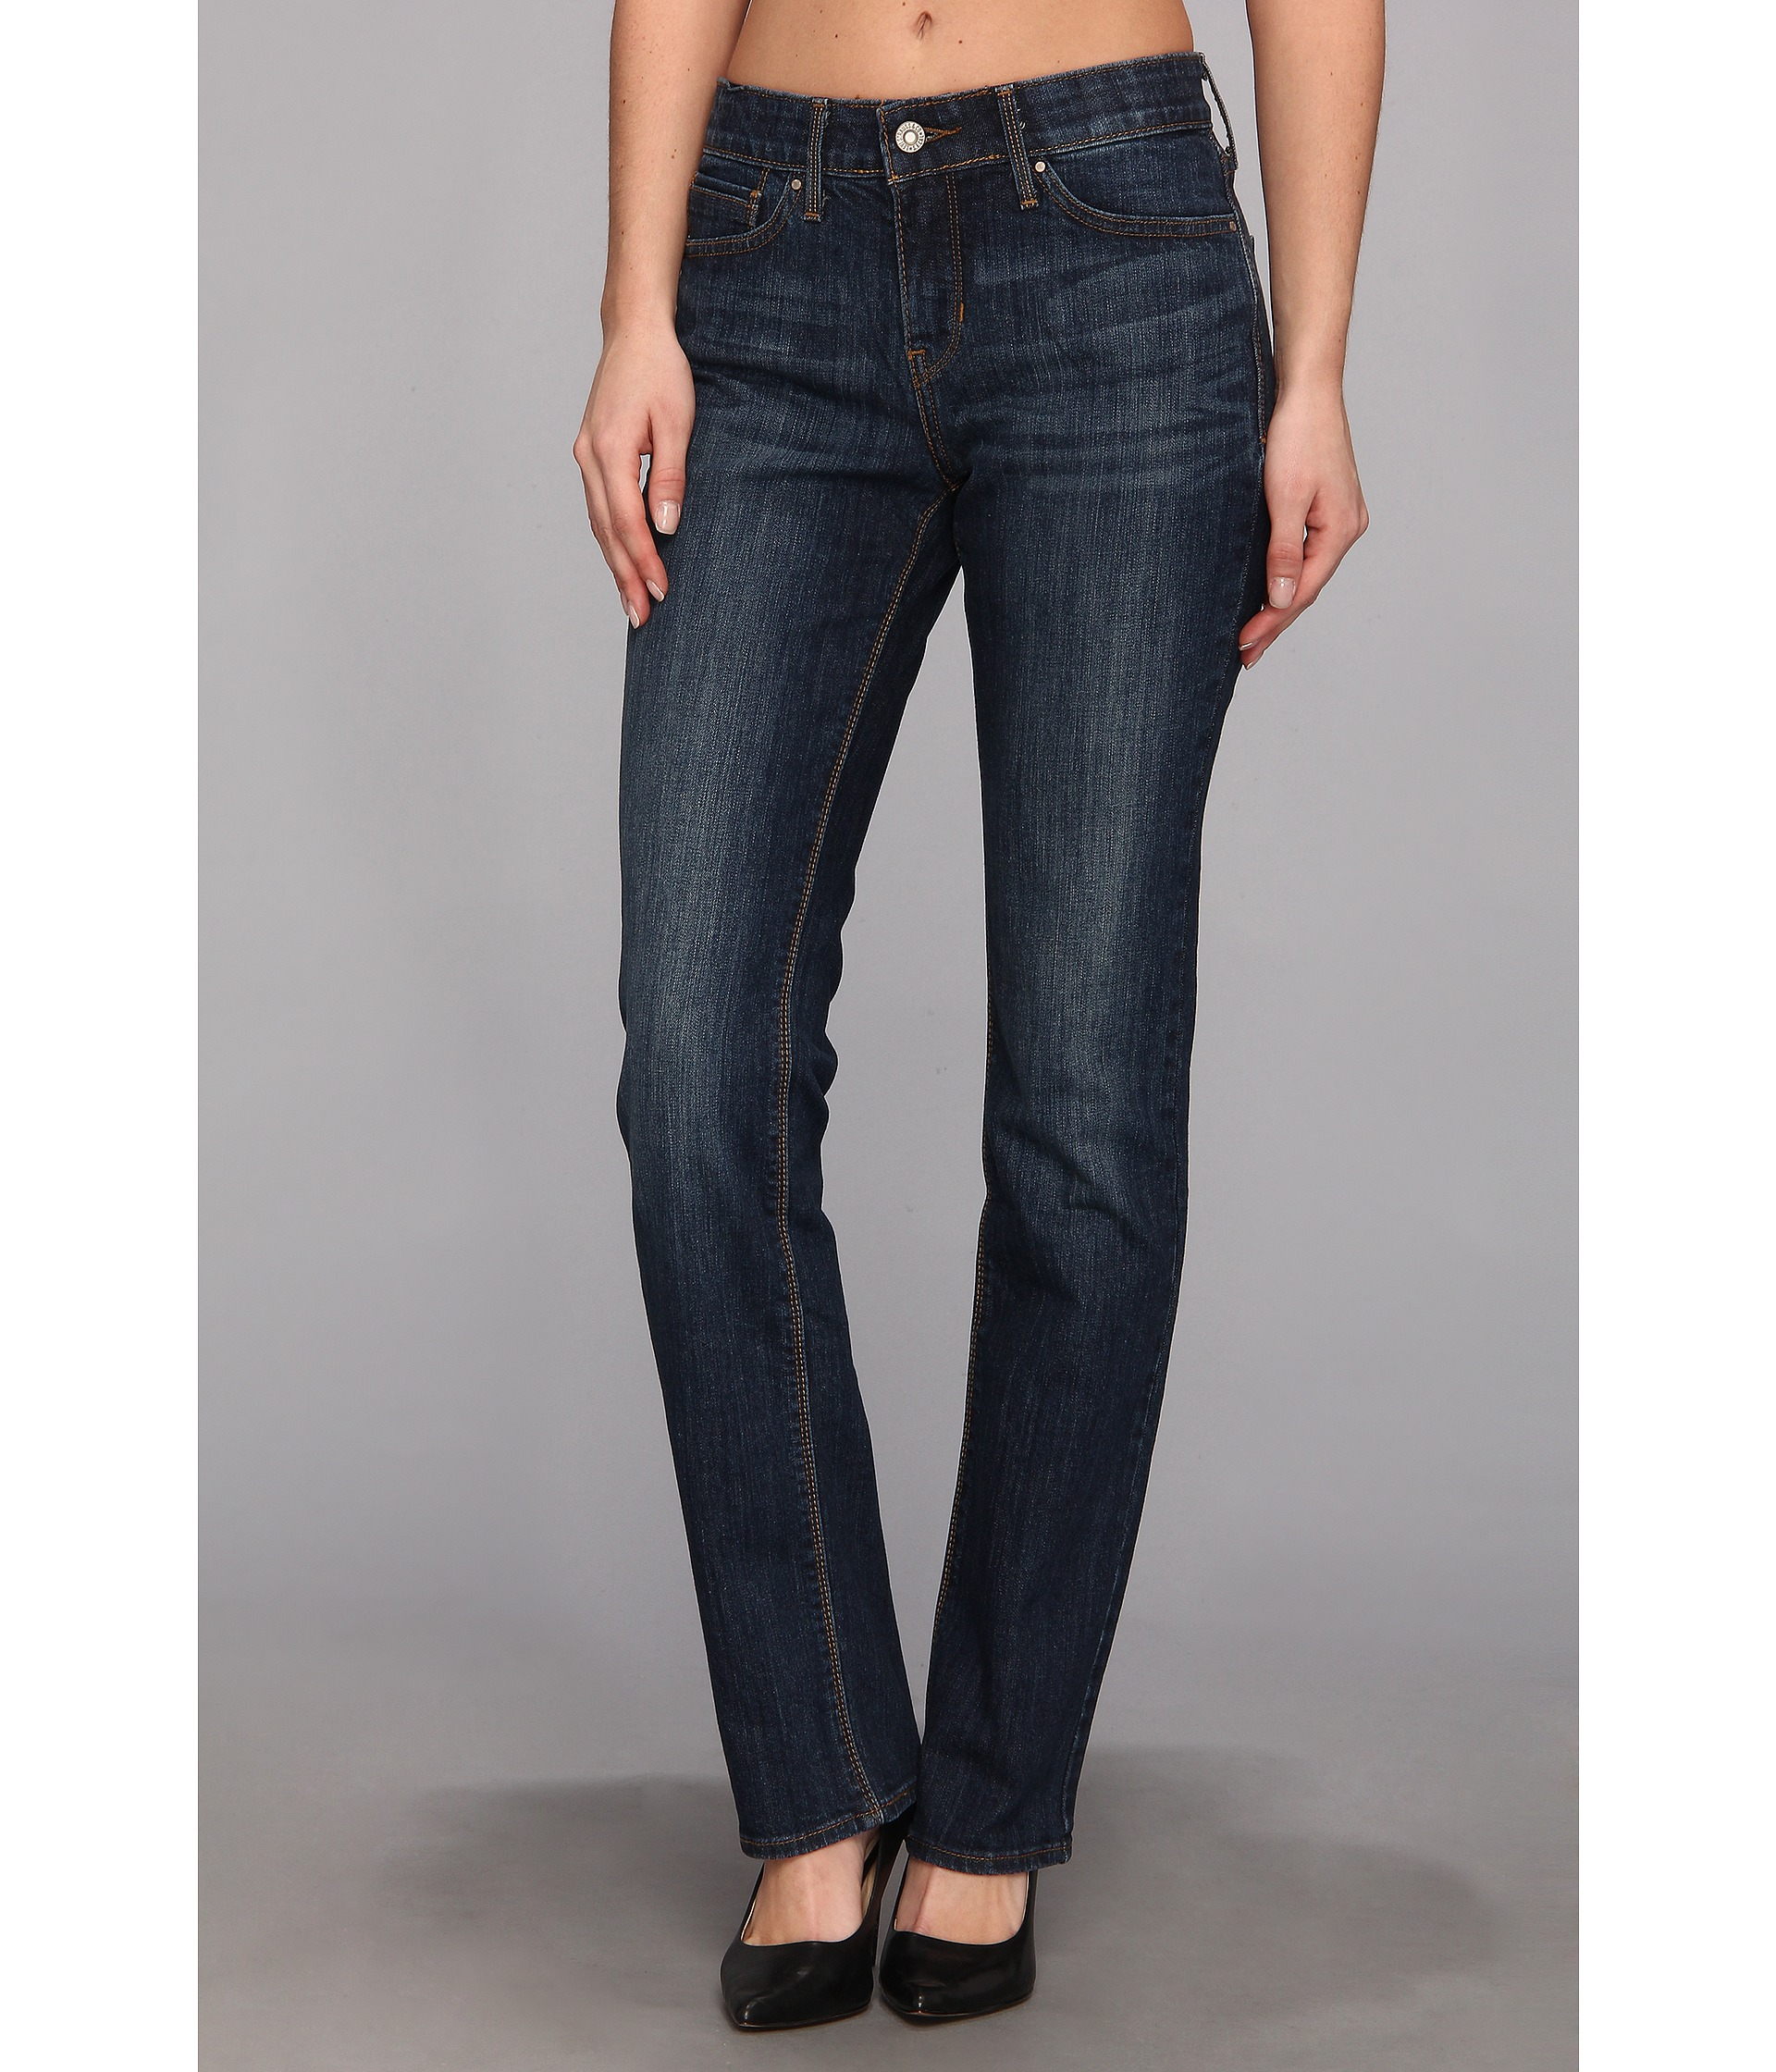 Shop Perfect Curves Jeans at Express. The best jeans for curvy women flatter your shape to perfection. Defining your waist, elongating your legs, and hugging your curves, these jeans do it all. Finding the best jeans for your shape can be tough, so go to Express to find our favorite jeans to fit your figure.